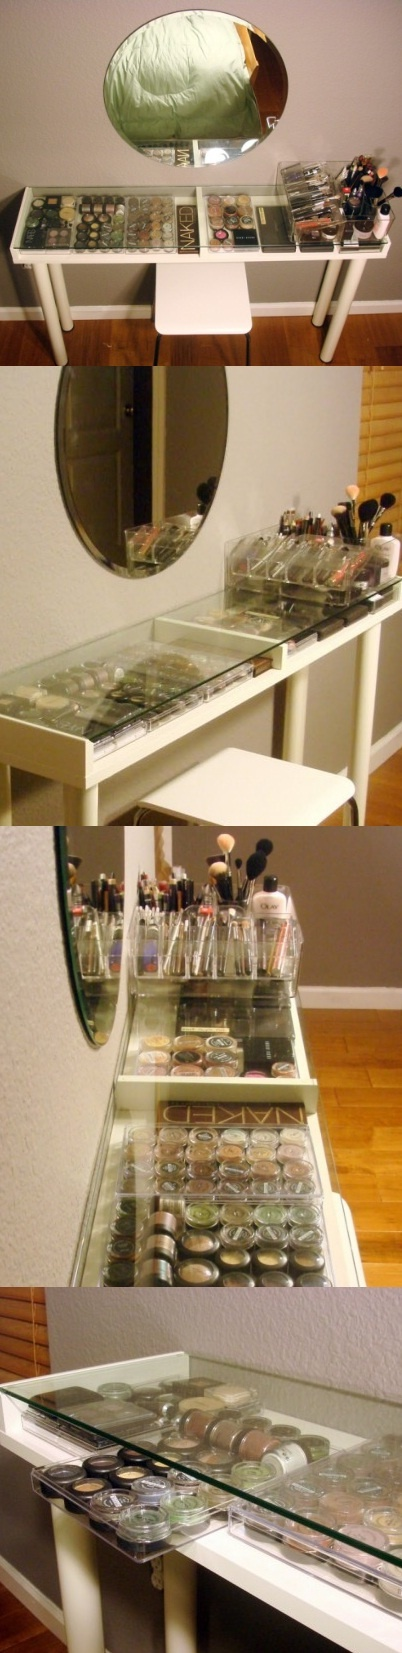 If you search for a perfect makeup storage solution then a makeup vanity is what you need. Such solution also allows to sit, relax and do makeup. The cool thing is that you can make a cool vanity mostly of parts came from IKEA so it won't be pricey. It will be compact, with the glass top that allows to see everything and with easy access to the makeup stuff.  For the project you'll need four Vika Curry legs, an Ekby Gruvan shelf, a Kolja mirror, a stool, and acrylic bead storage containers…